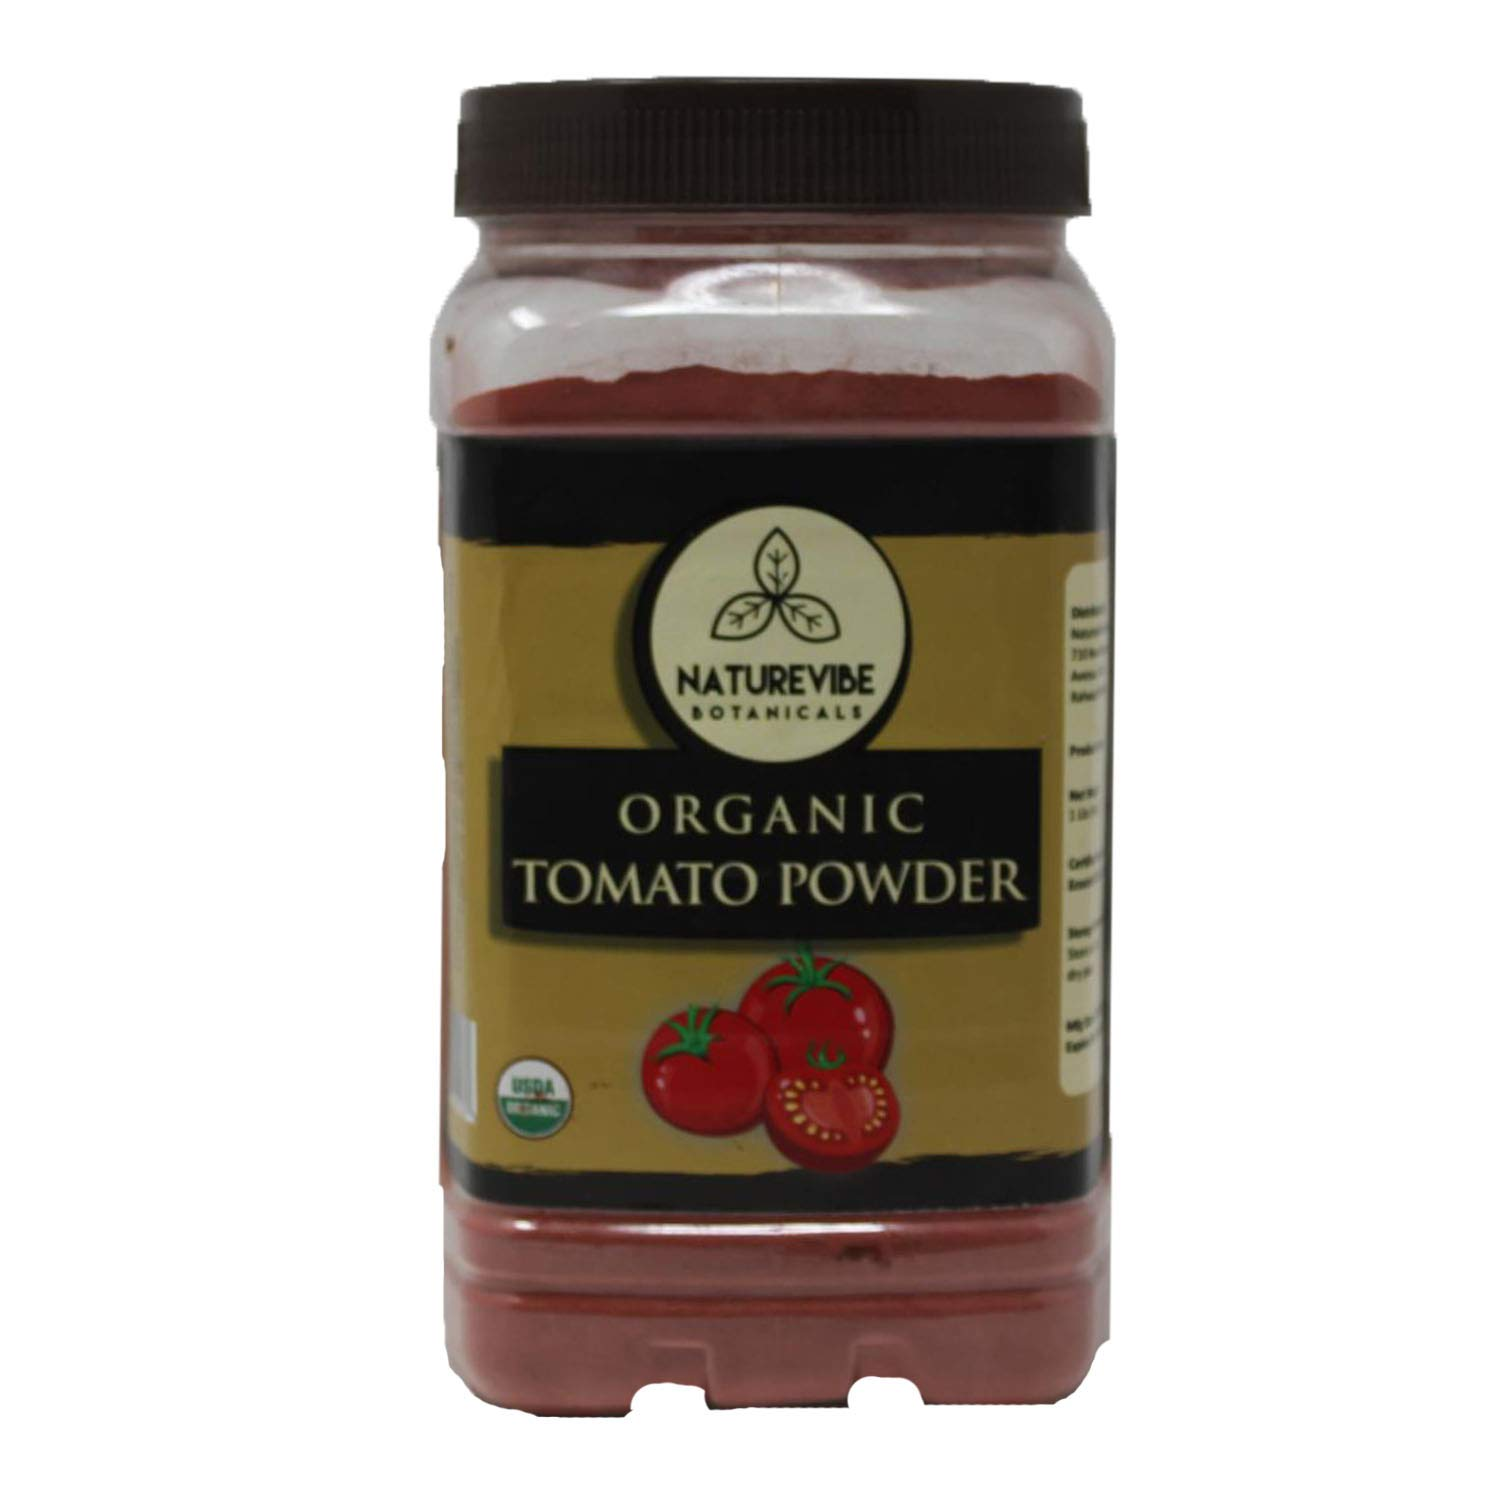 Organic Tomato Powder (1lb) by Naturevibe Botanicals, (16 ounces)